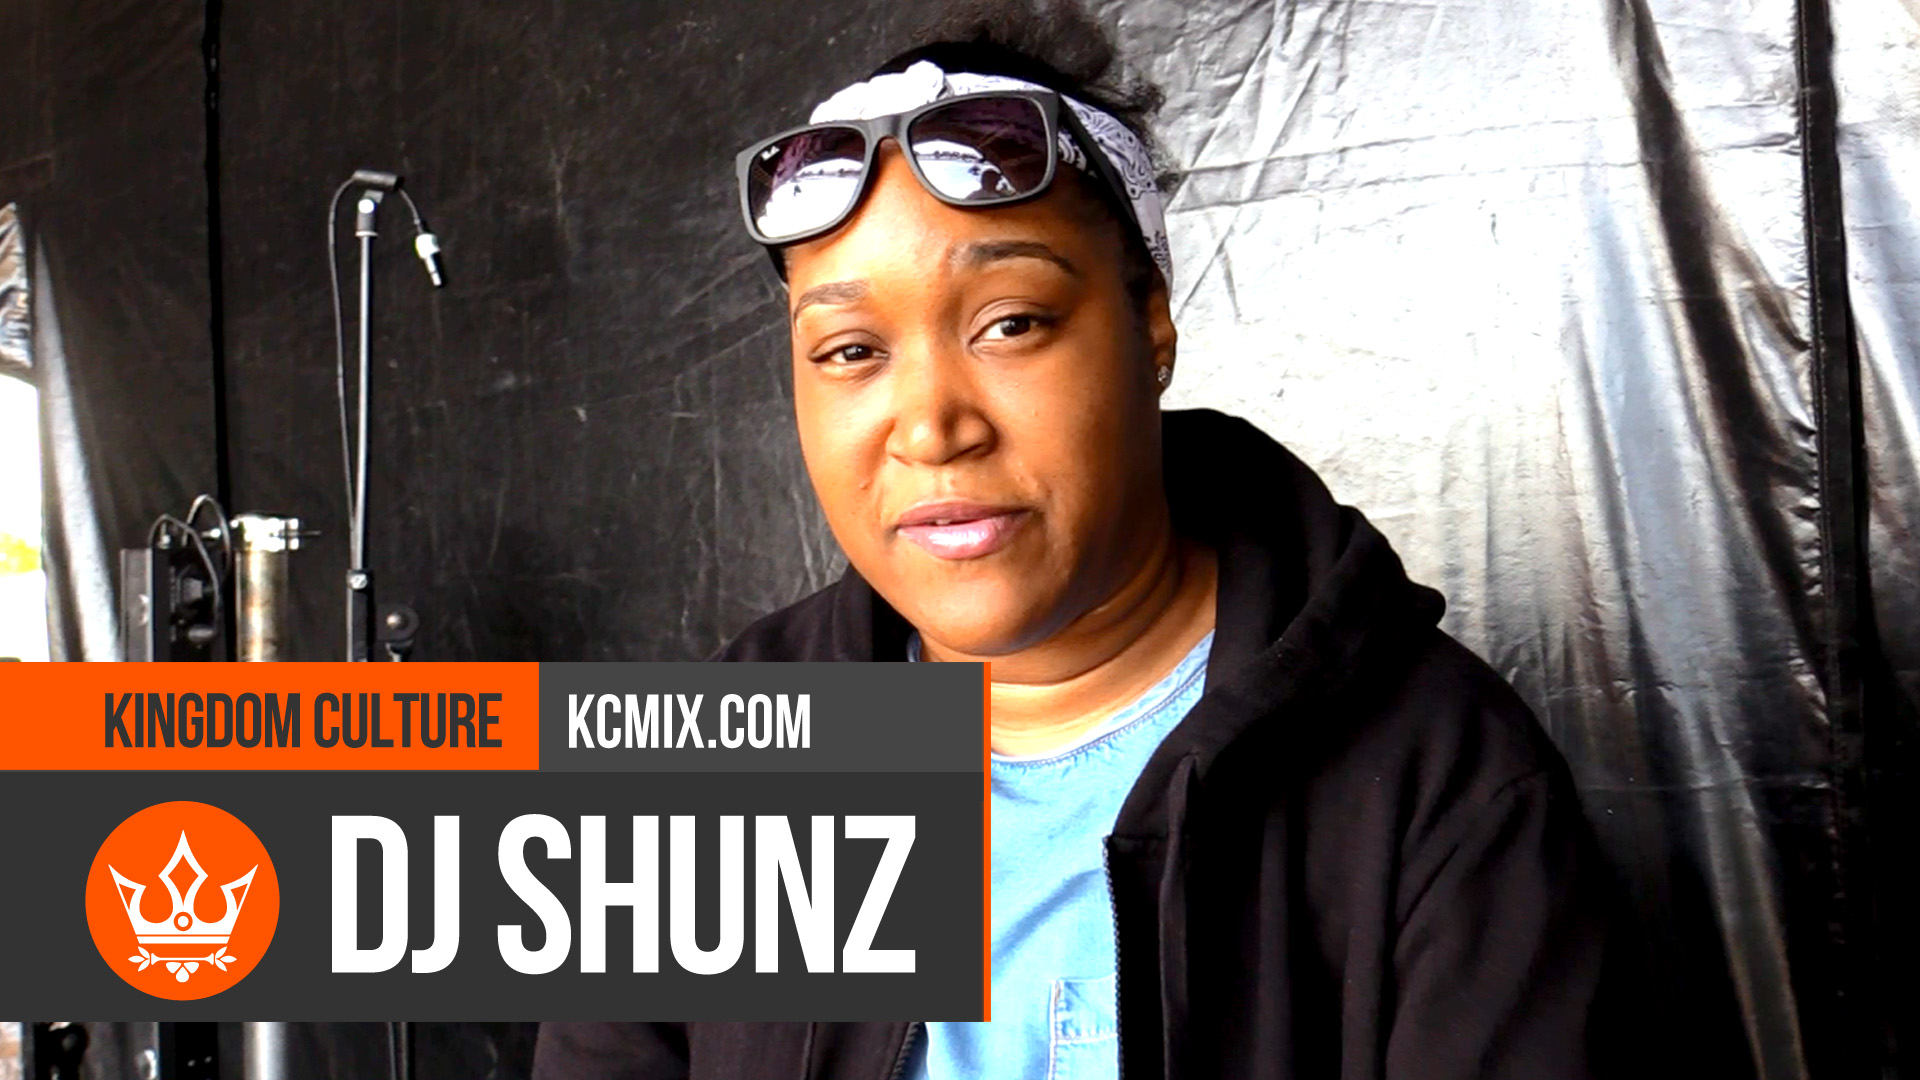 WE CATCH UP WITH THE TALENTED DJ SHUNZ